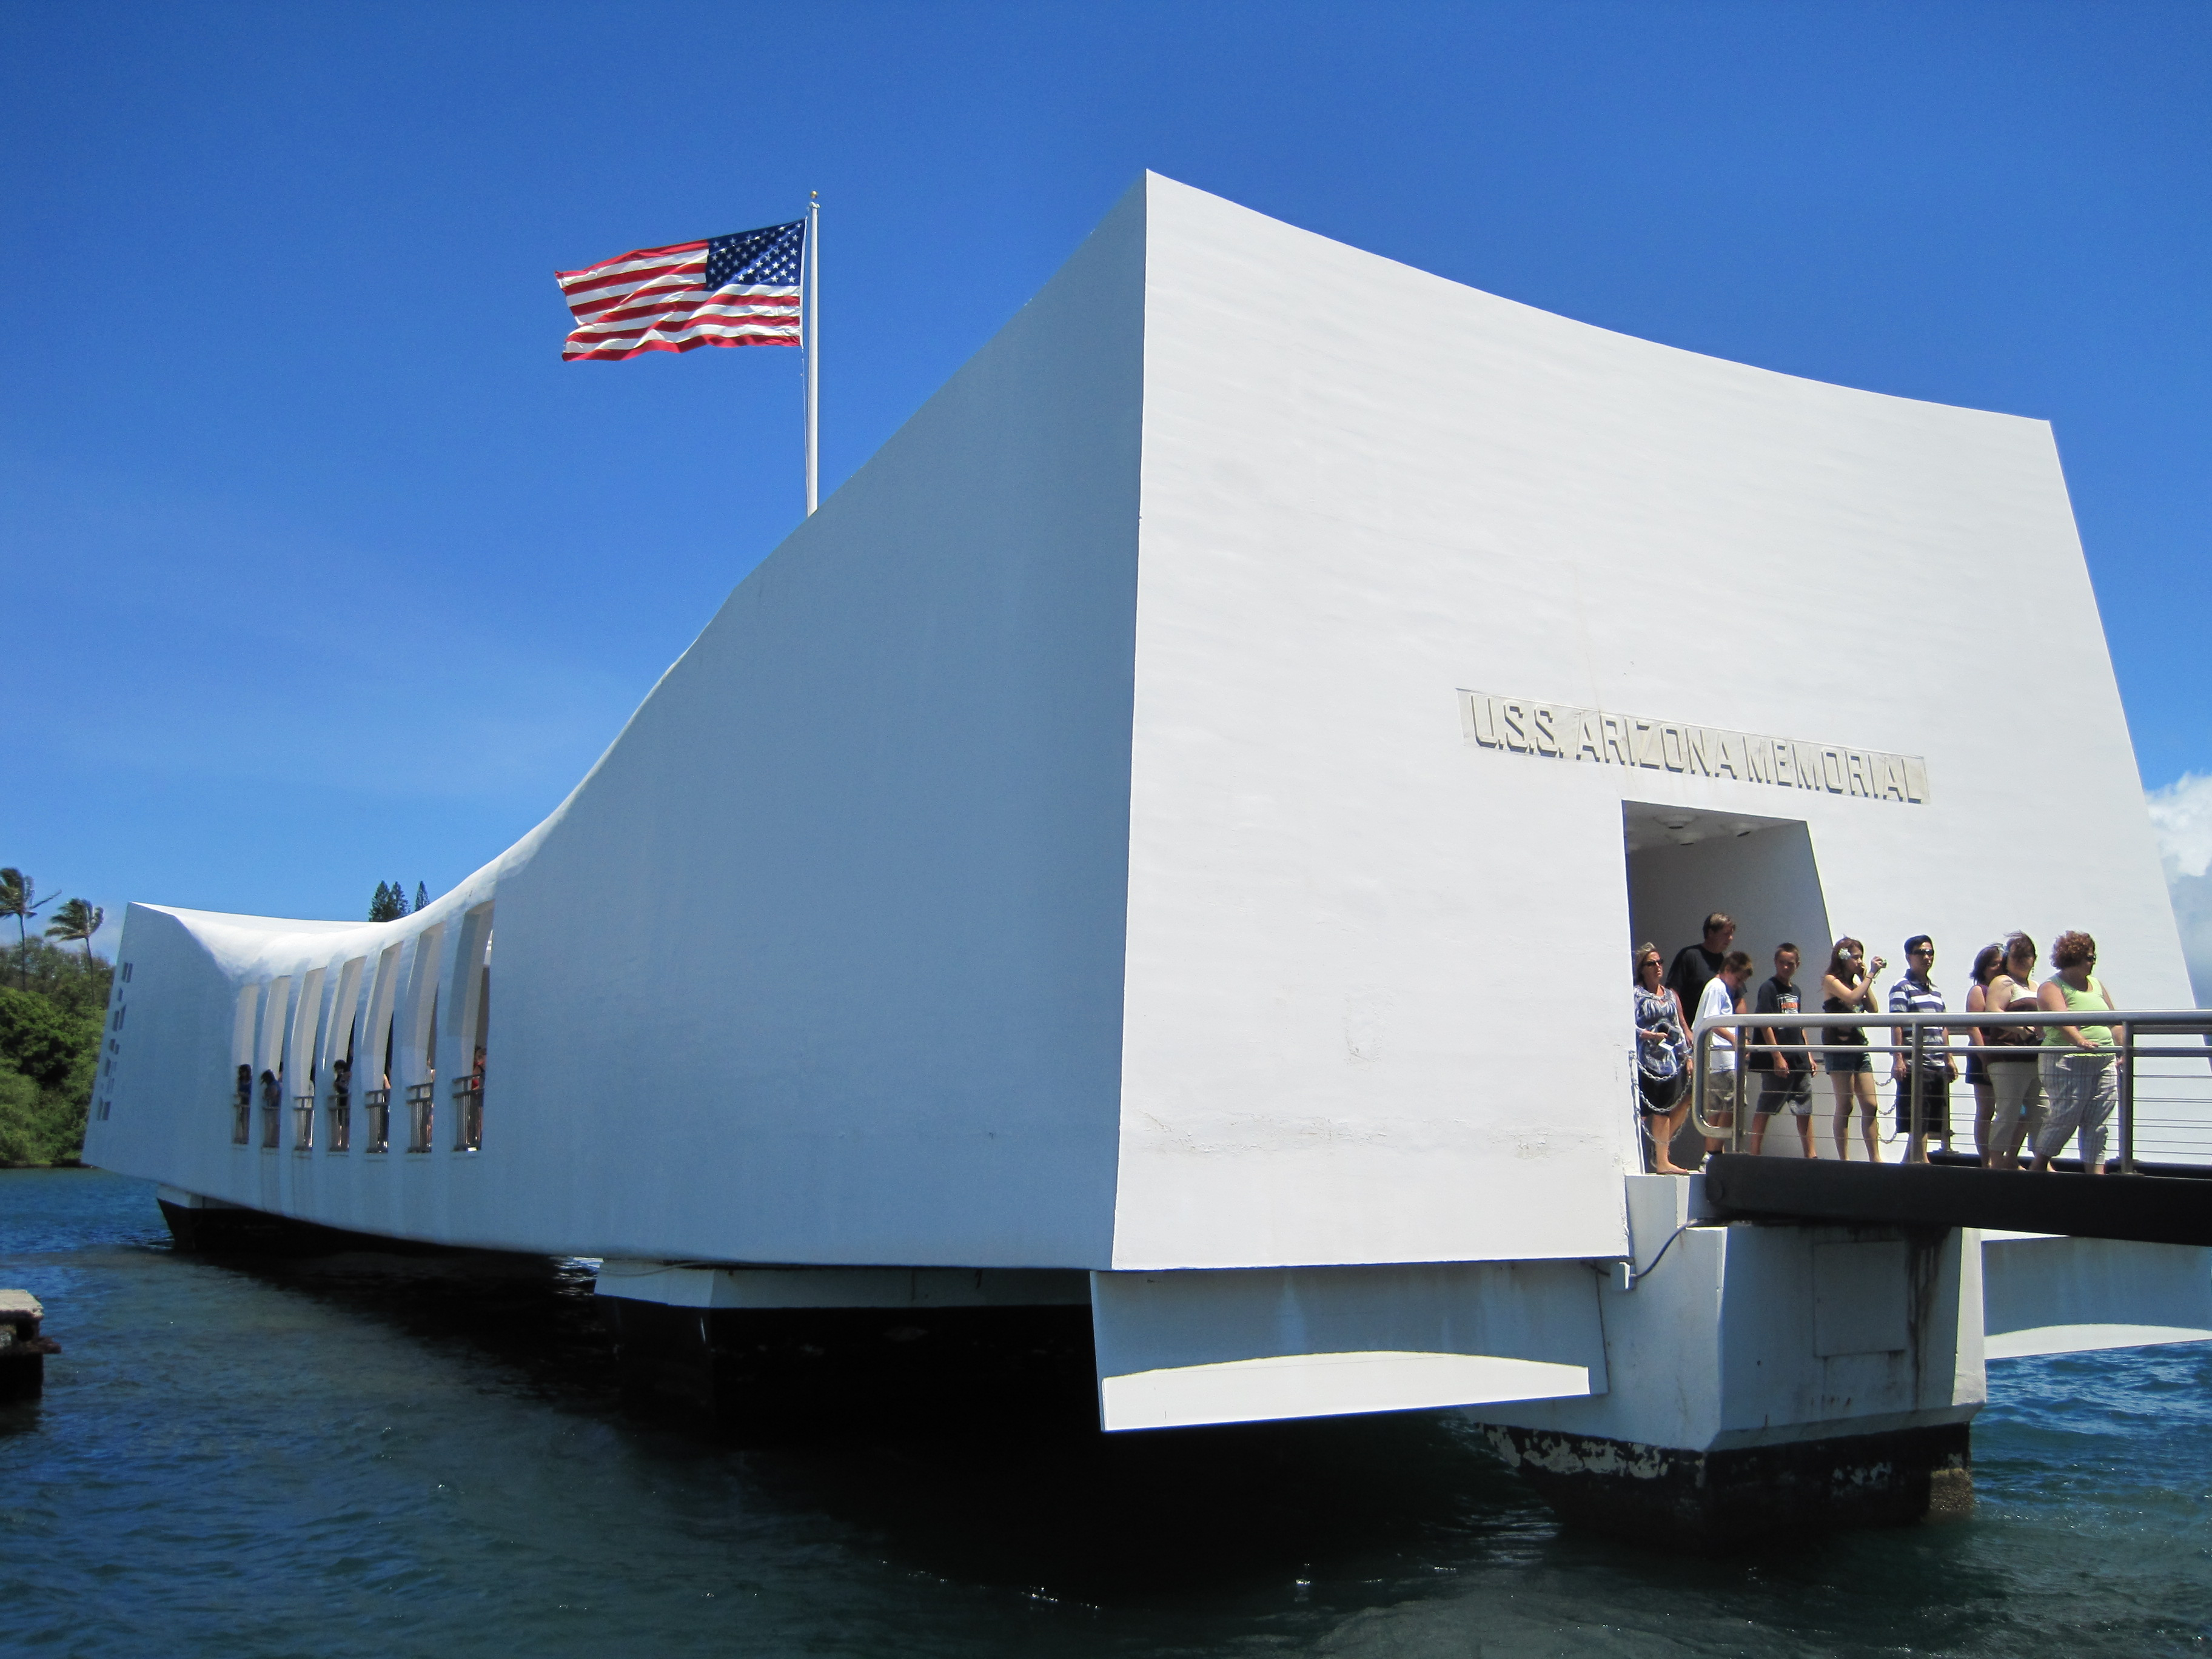 http://upload.wikimedia.org/wikipedia/commons/4/47/USS_Arizona_Memorial.JPG